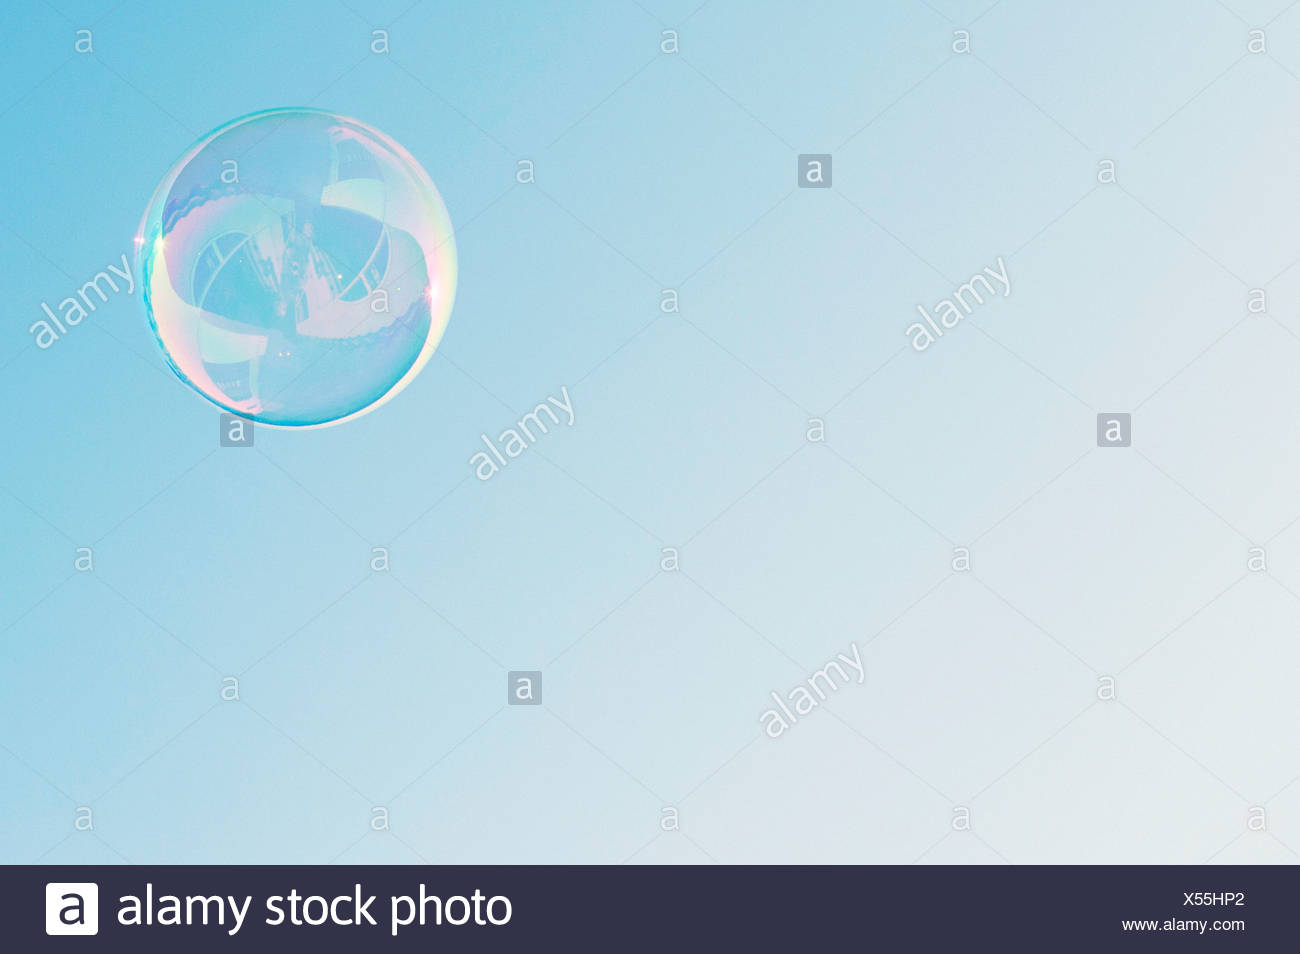 Low angle view of bubble against clear blue sky - Stock Image